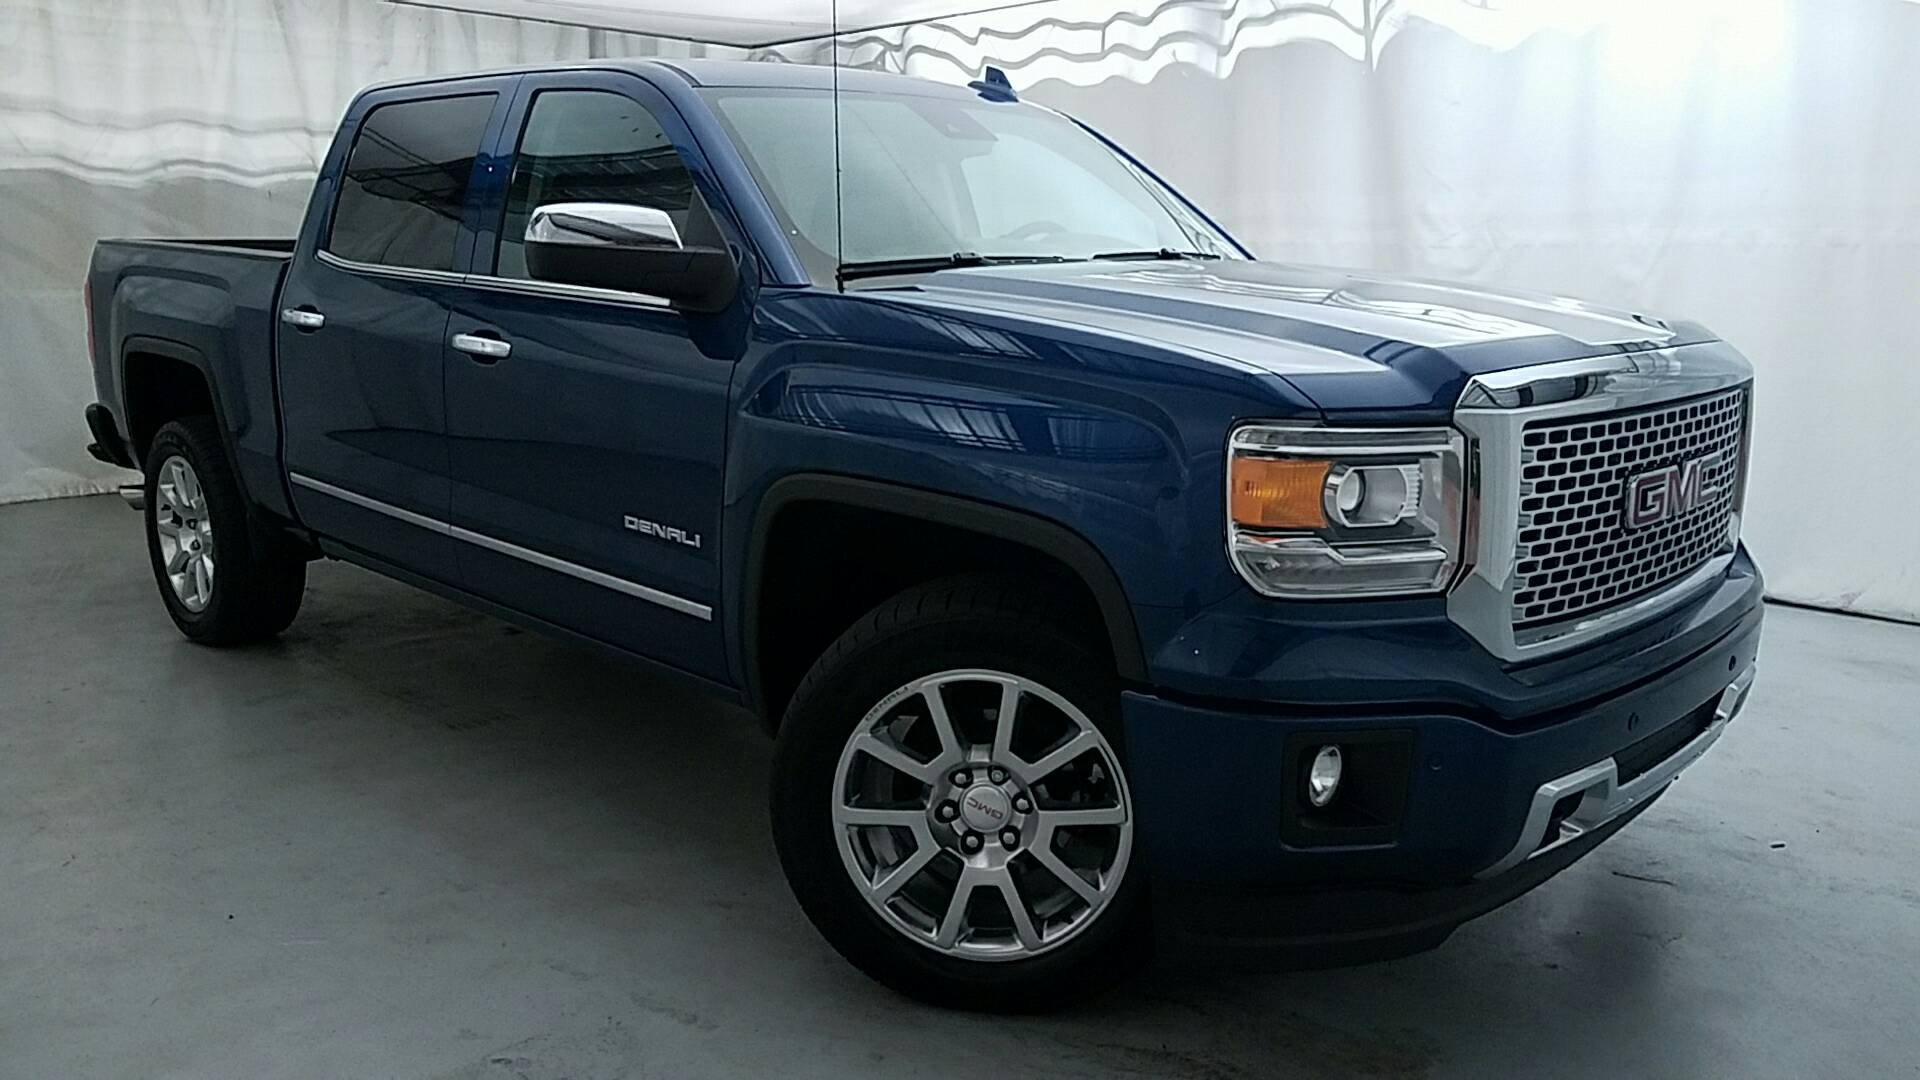 preowned vehicles for for hammond to drivers at ross downing 2015 gmc sierra 1500 vehicle photo in hammond la 70403